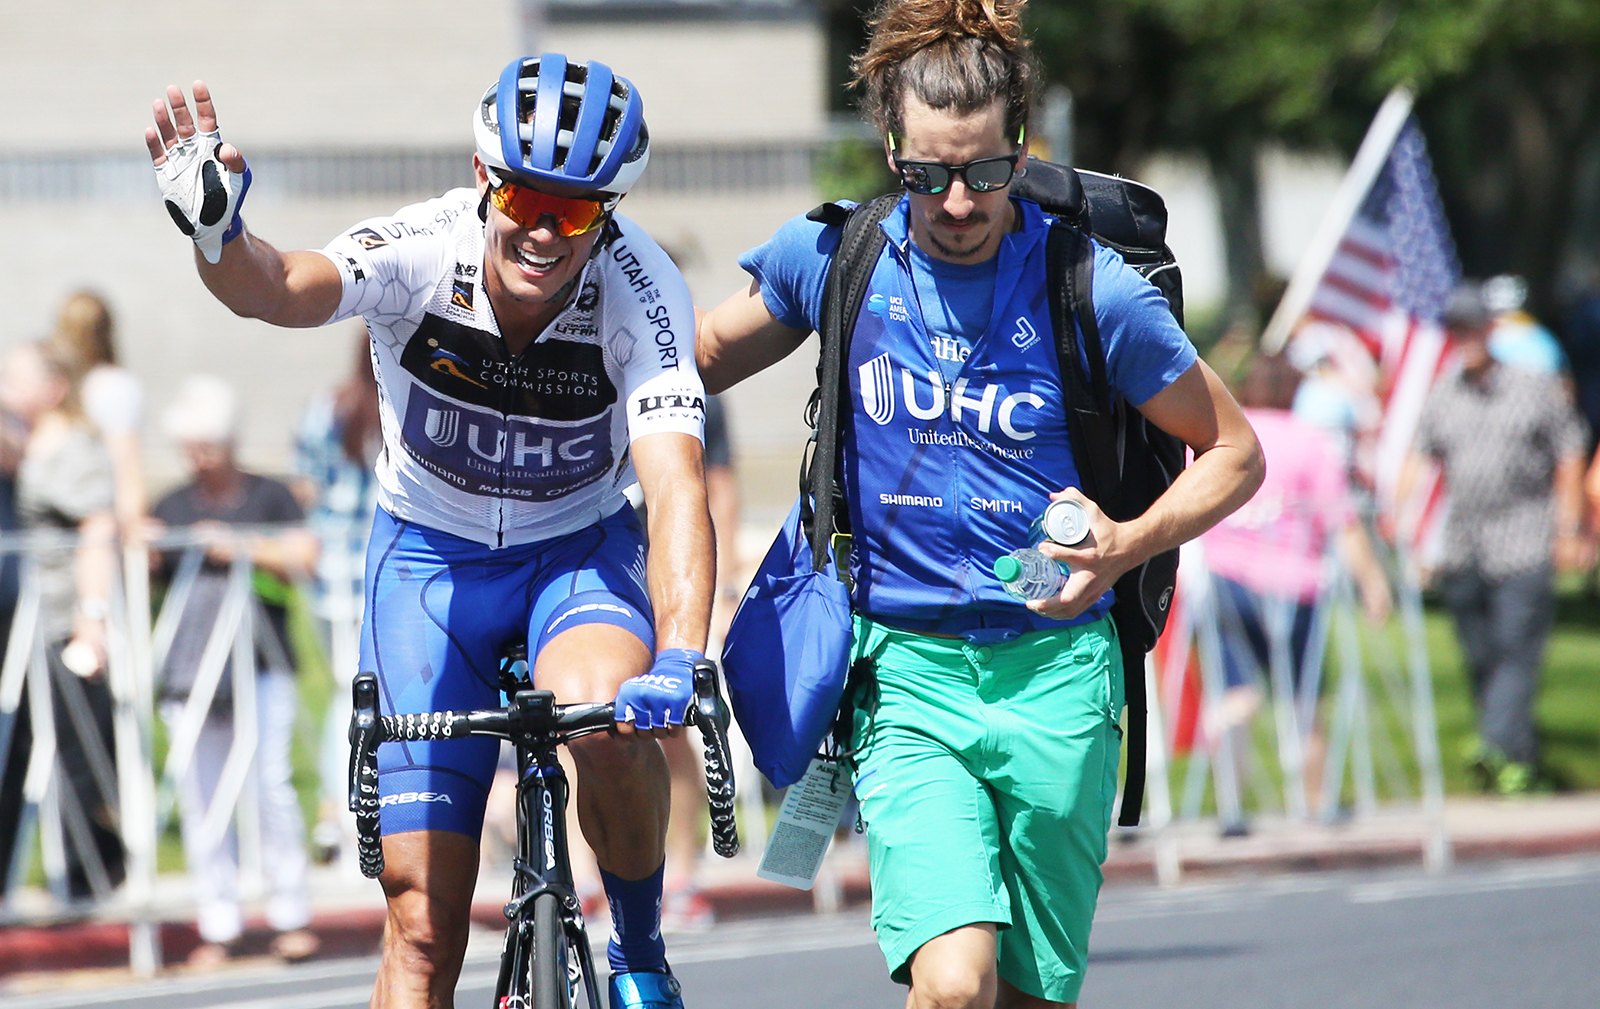 UHC soigneur escorts Travis McCabe to the green room. 2018 Tour of Utah Stage 3, August 8, 2018, Layton, Utah. Photo by Cathy Fegan-Kim, cottonsoxphotography.net